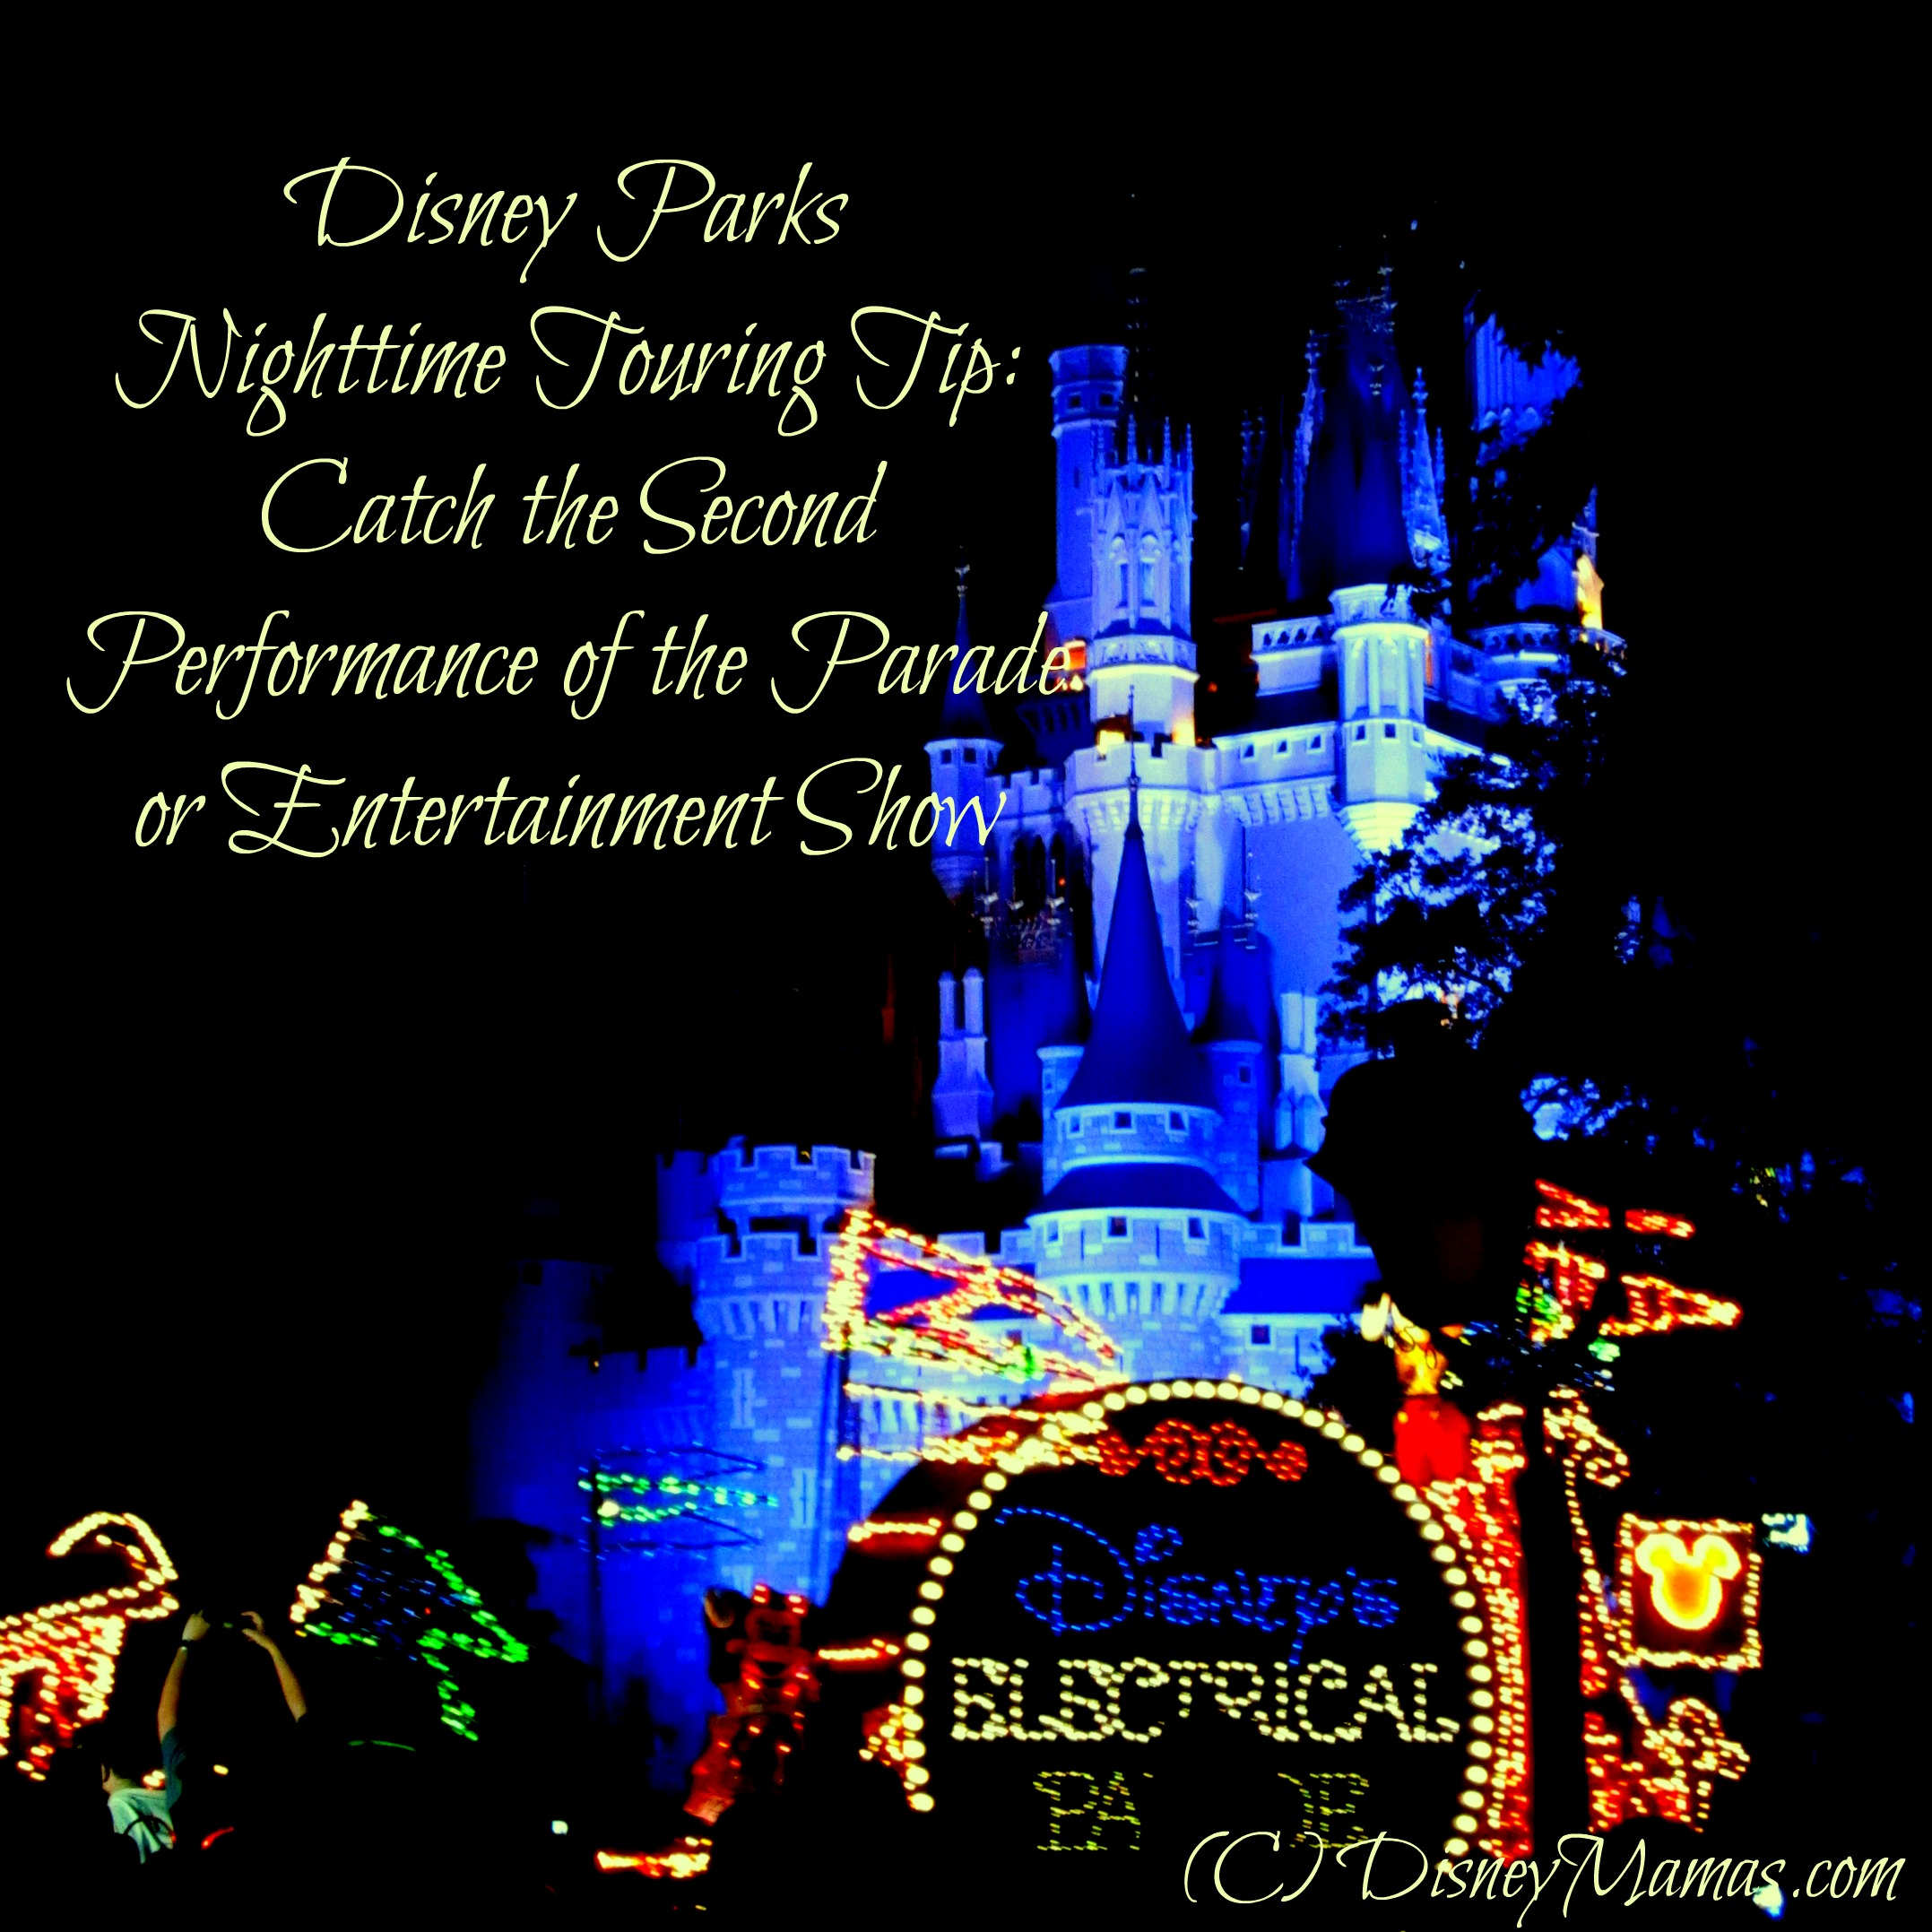 Disney Parks Nighttime Touring Tip: Catch the Second Parade or Entertainment Showing.  Crowds will be significantly lighter and you won't have to stake out your spot nearly as early.